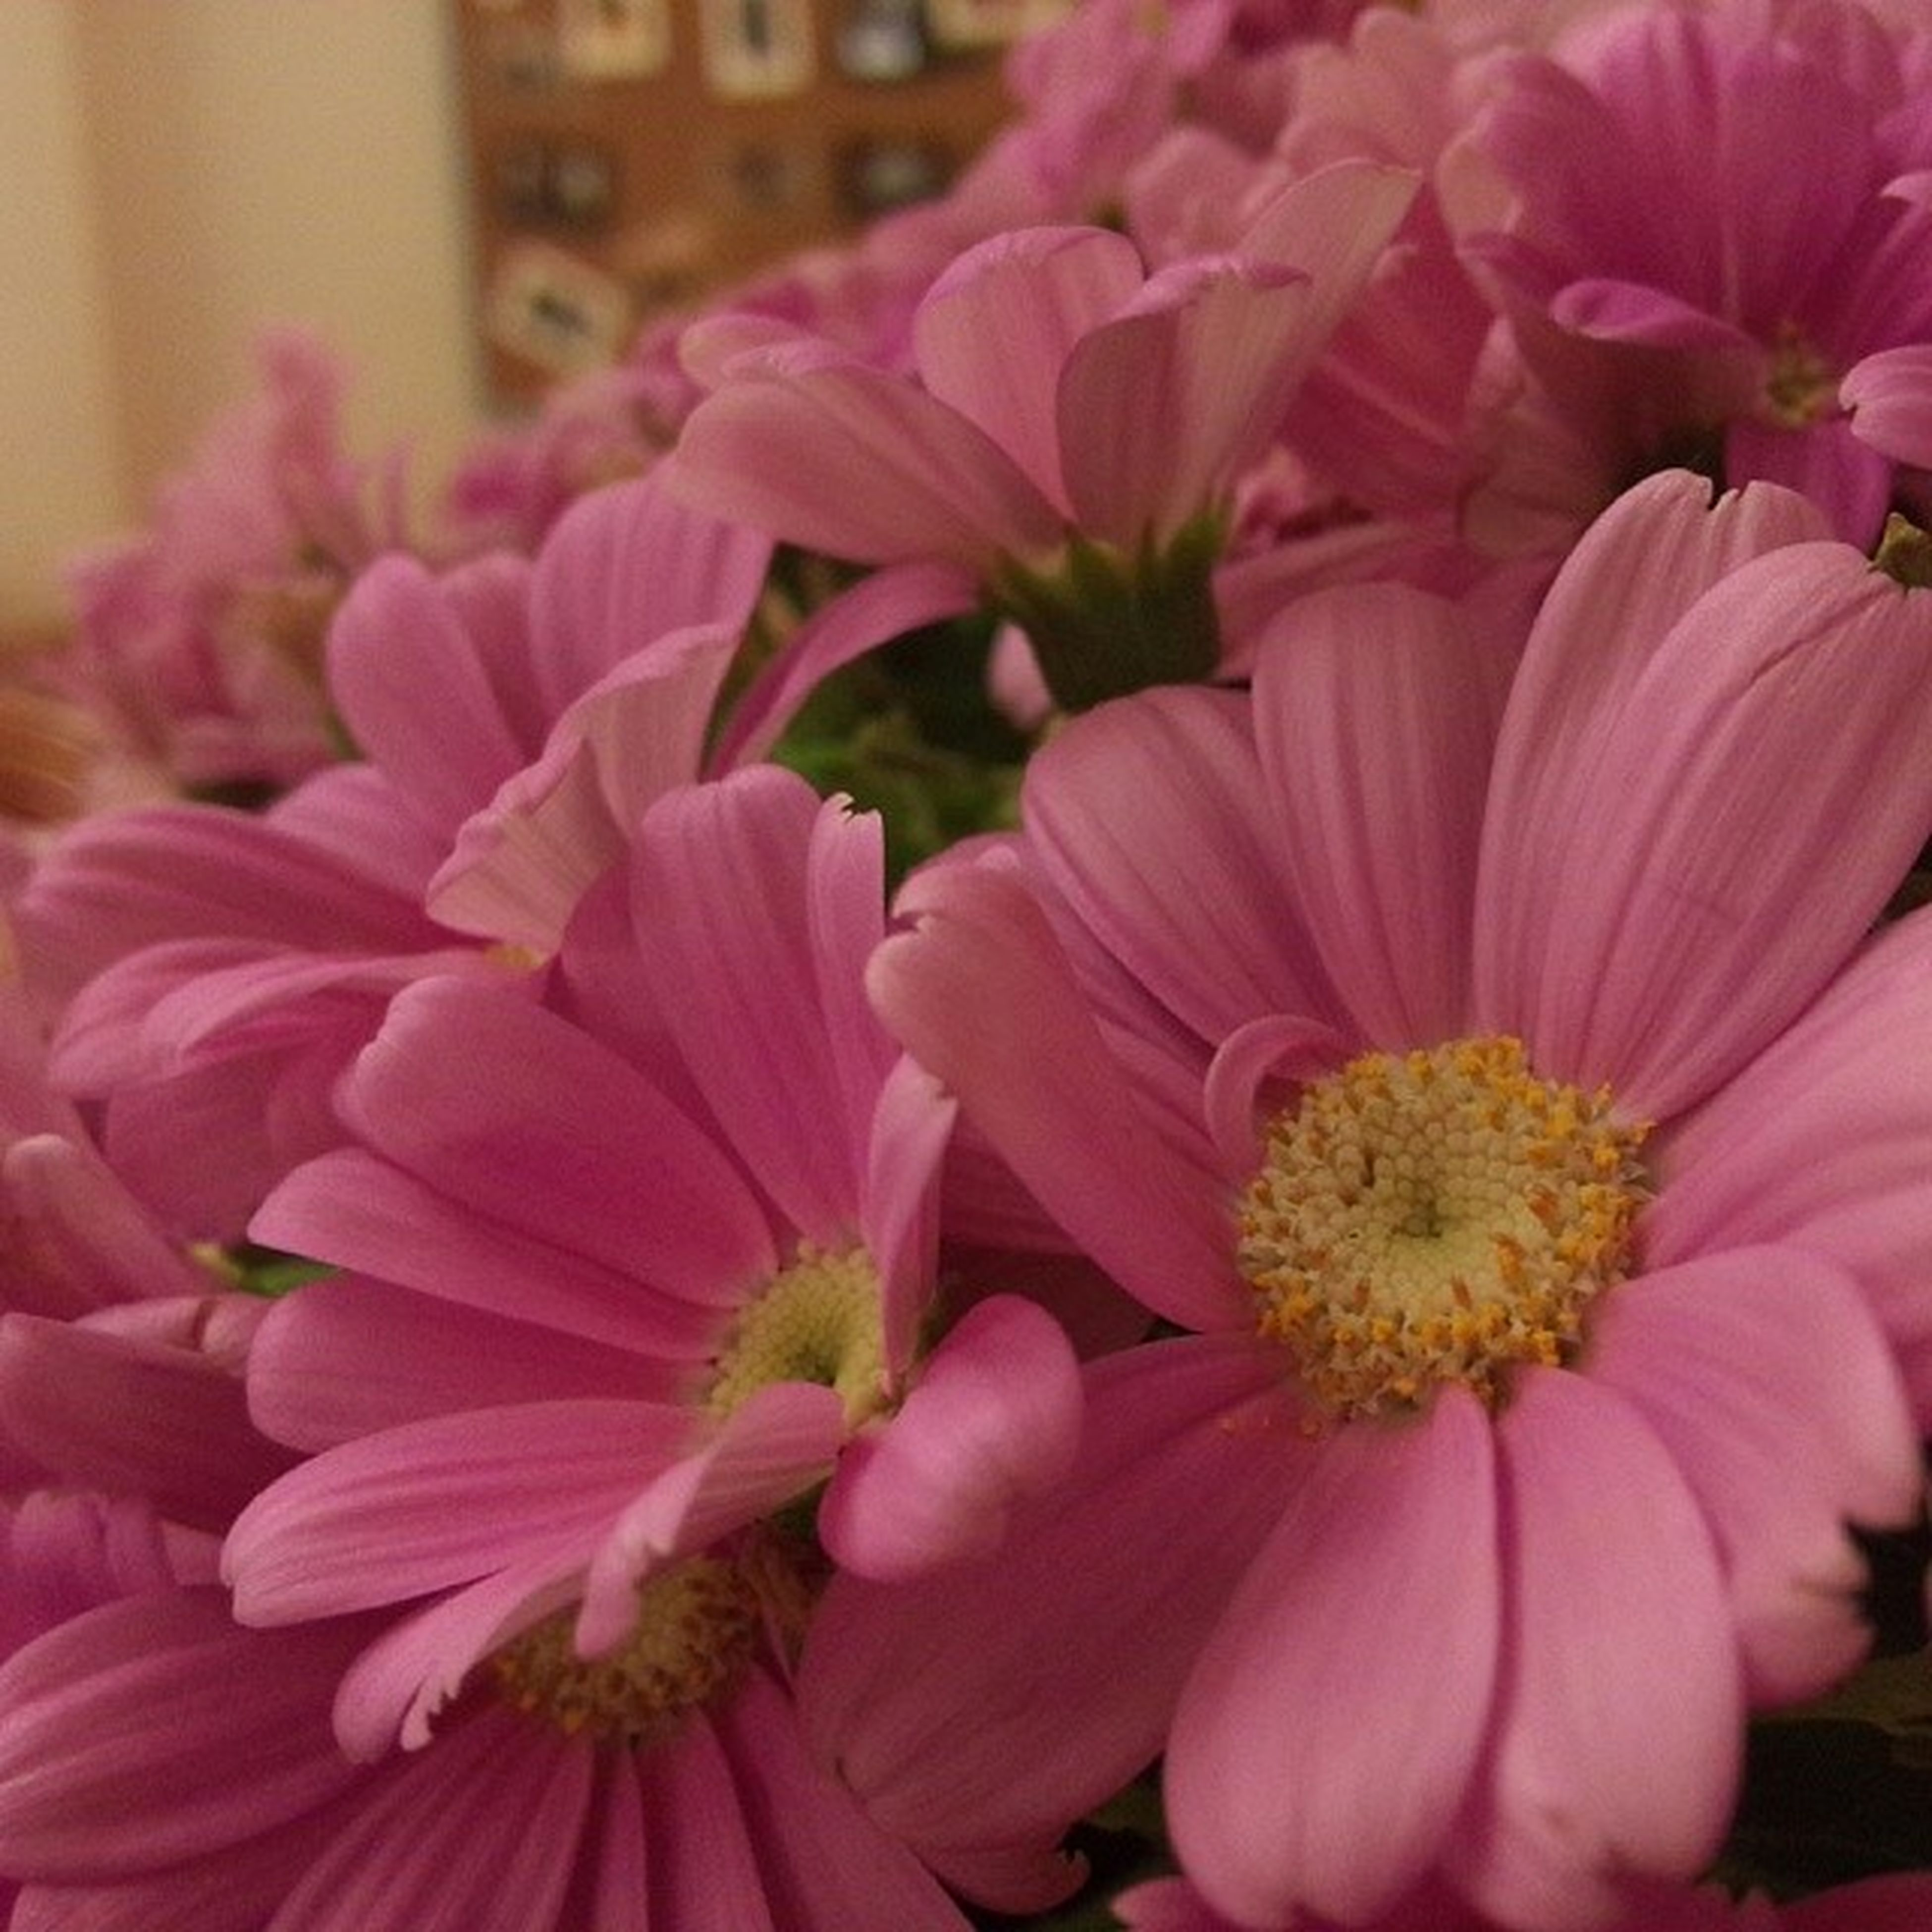 flower, freshness, petal, pink color, fragility, flower head, beauty in nature, close-up, growth, focus on foreground, nature, pink, blooming, indoors, plant, in bloom, no people, pollen, blossom, selective focus